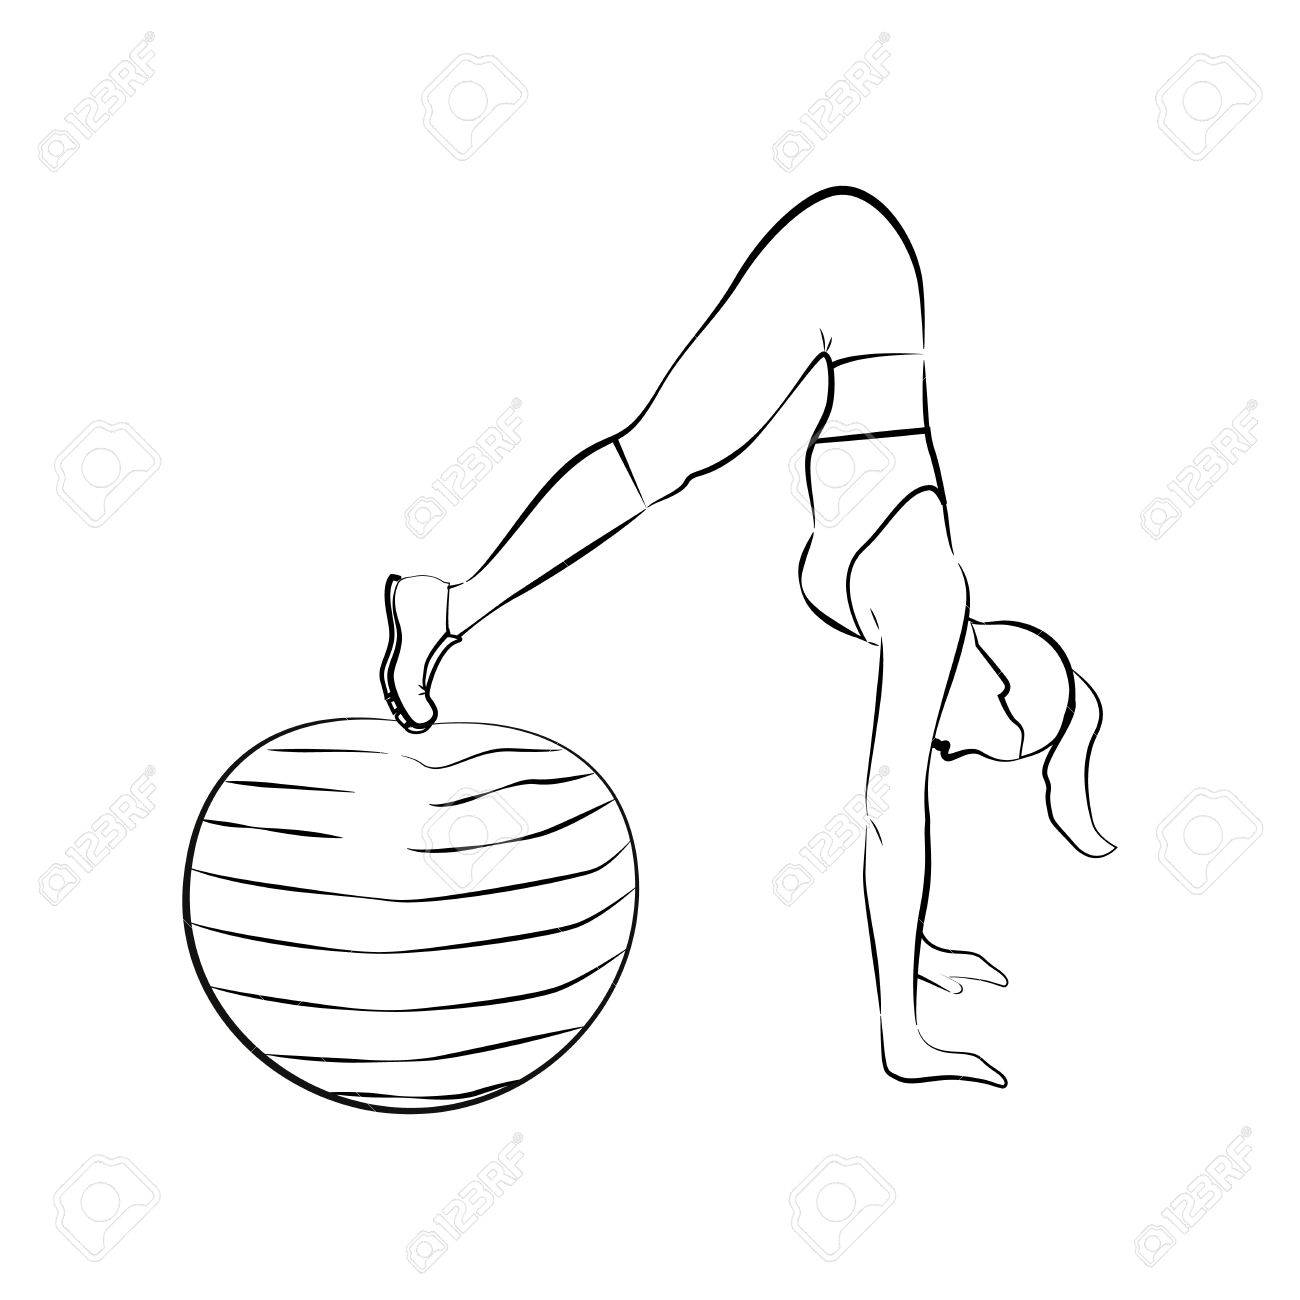 1300x1300 White Silhouette Of Woman Doing Abs Exercises On Fitball. Healthy